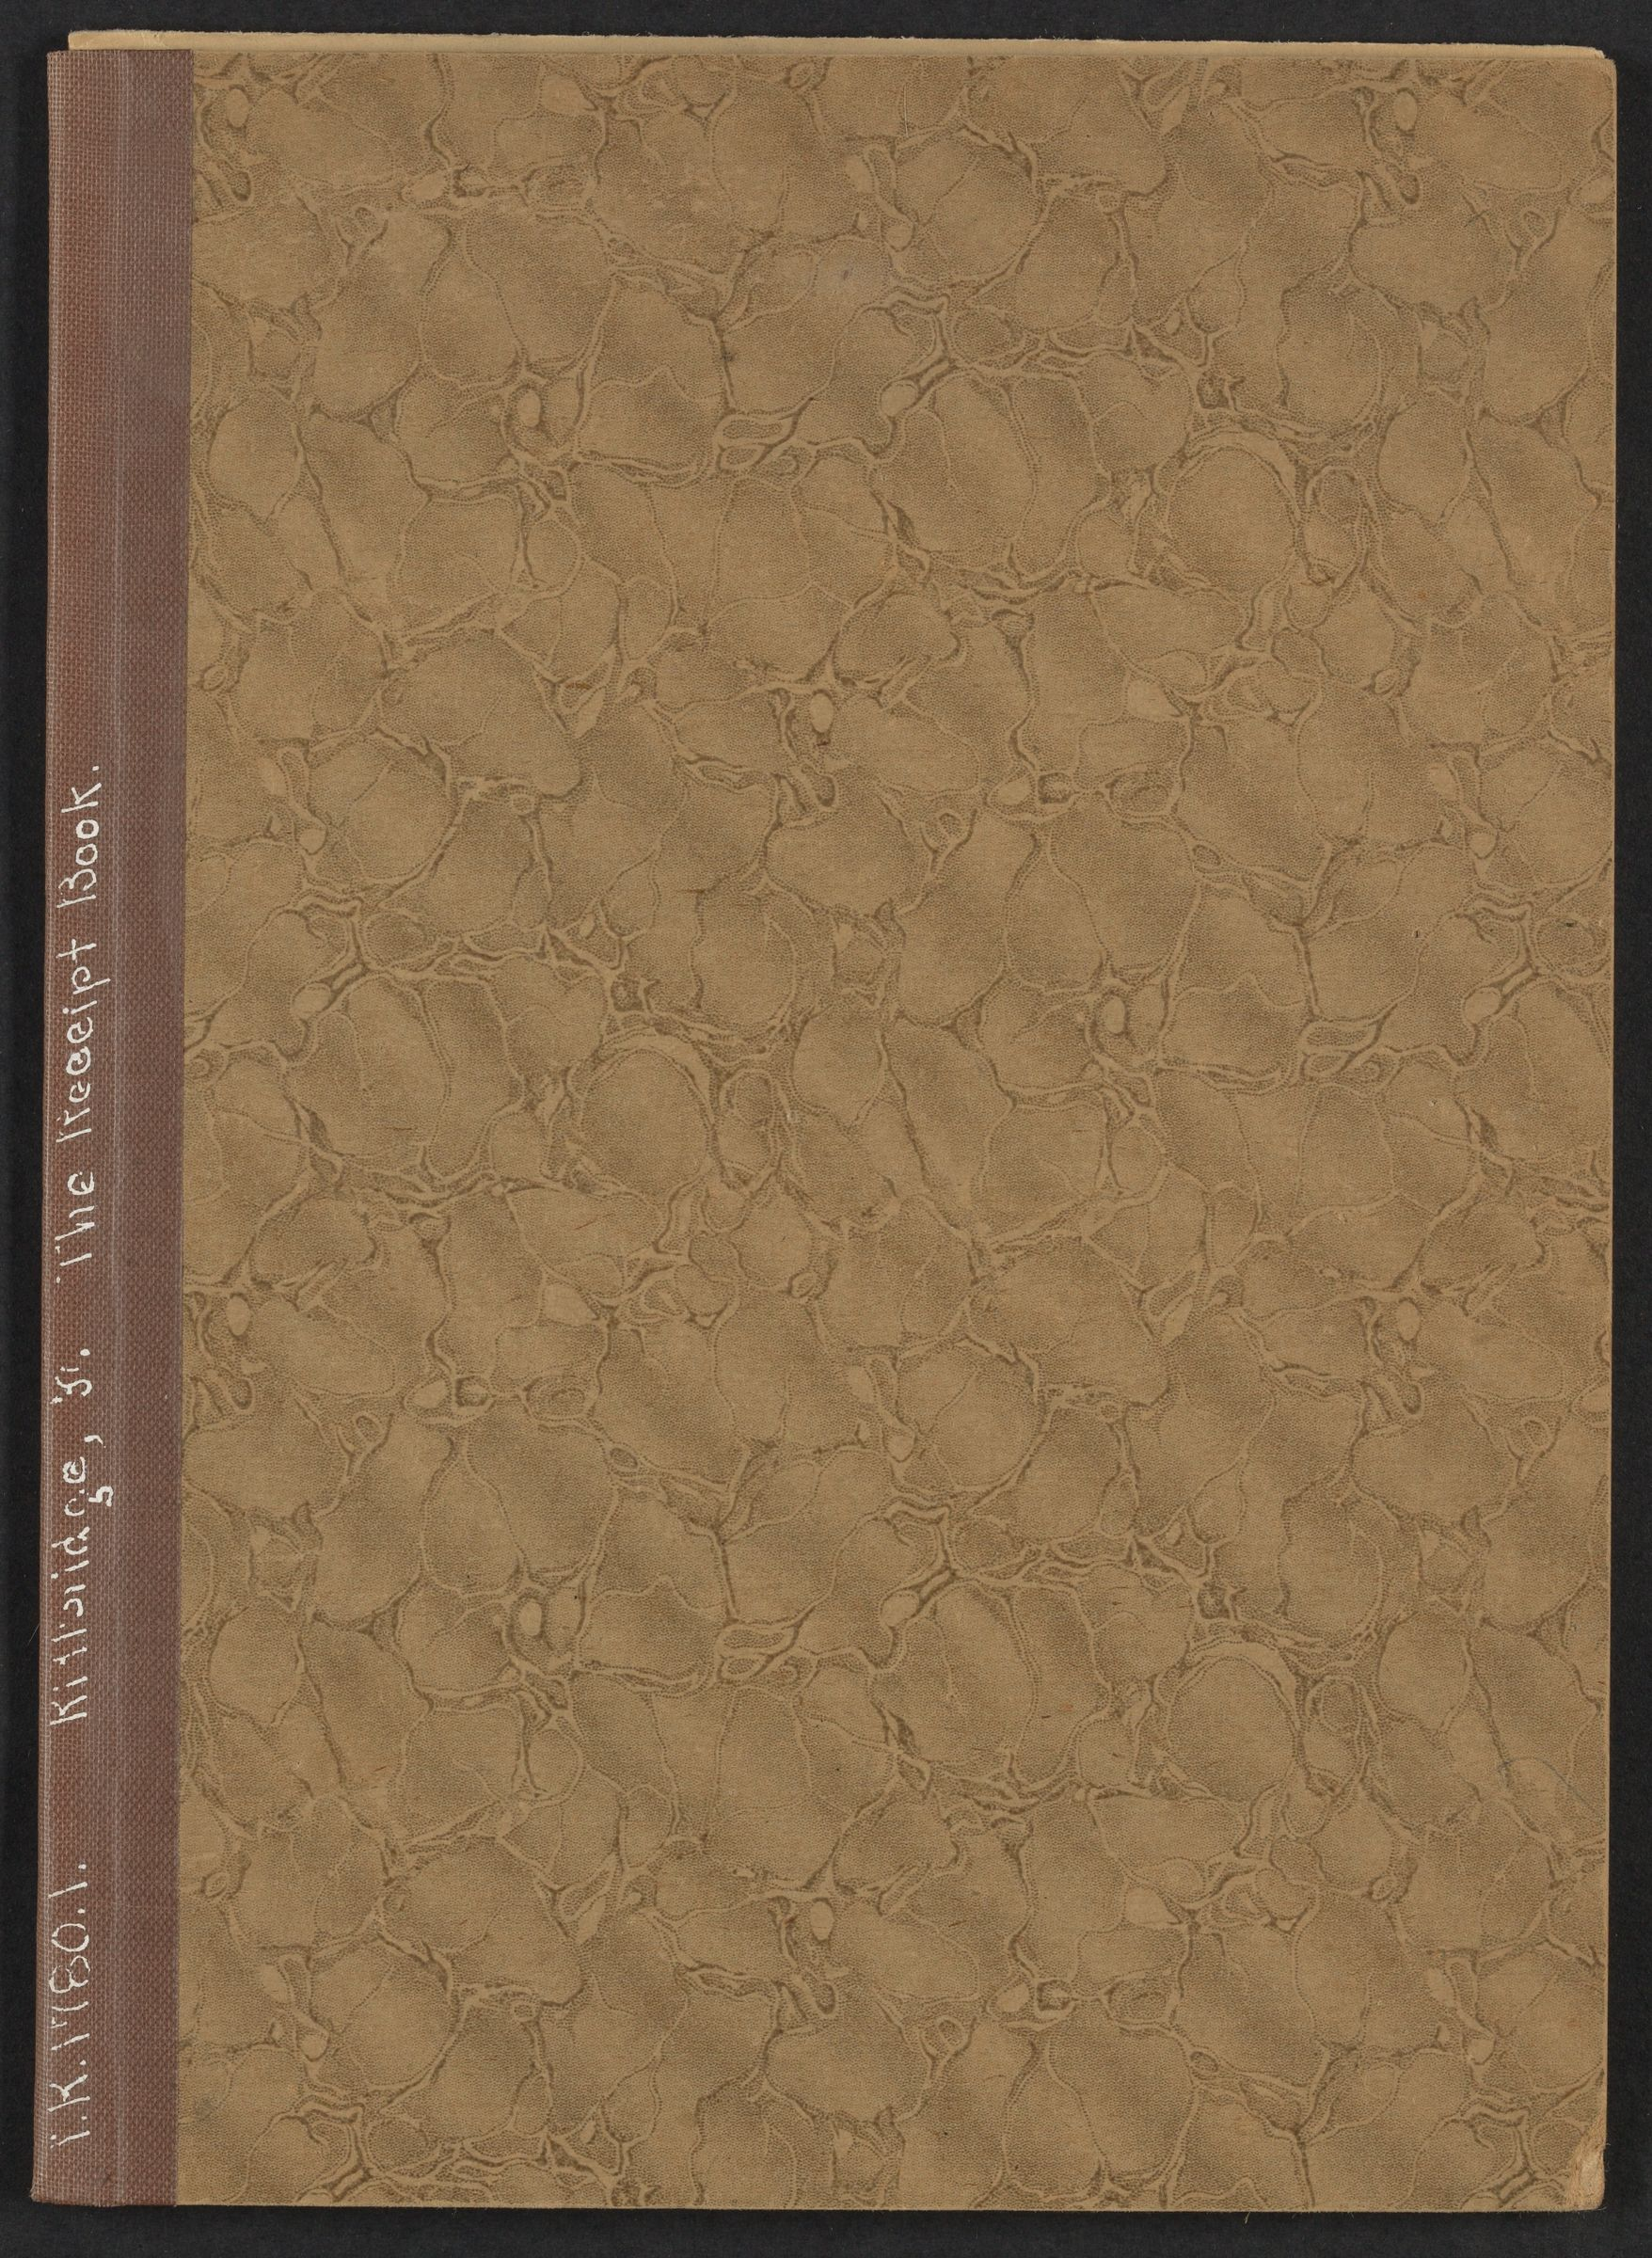 Receipt book of Francis Kittredge, 1780